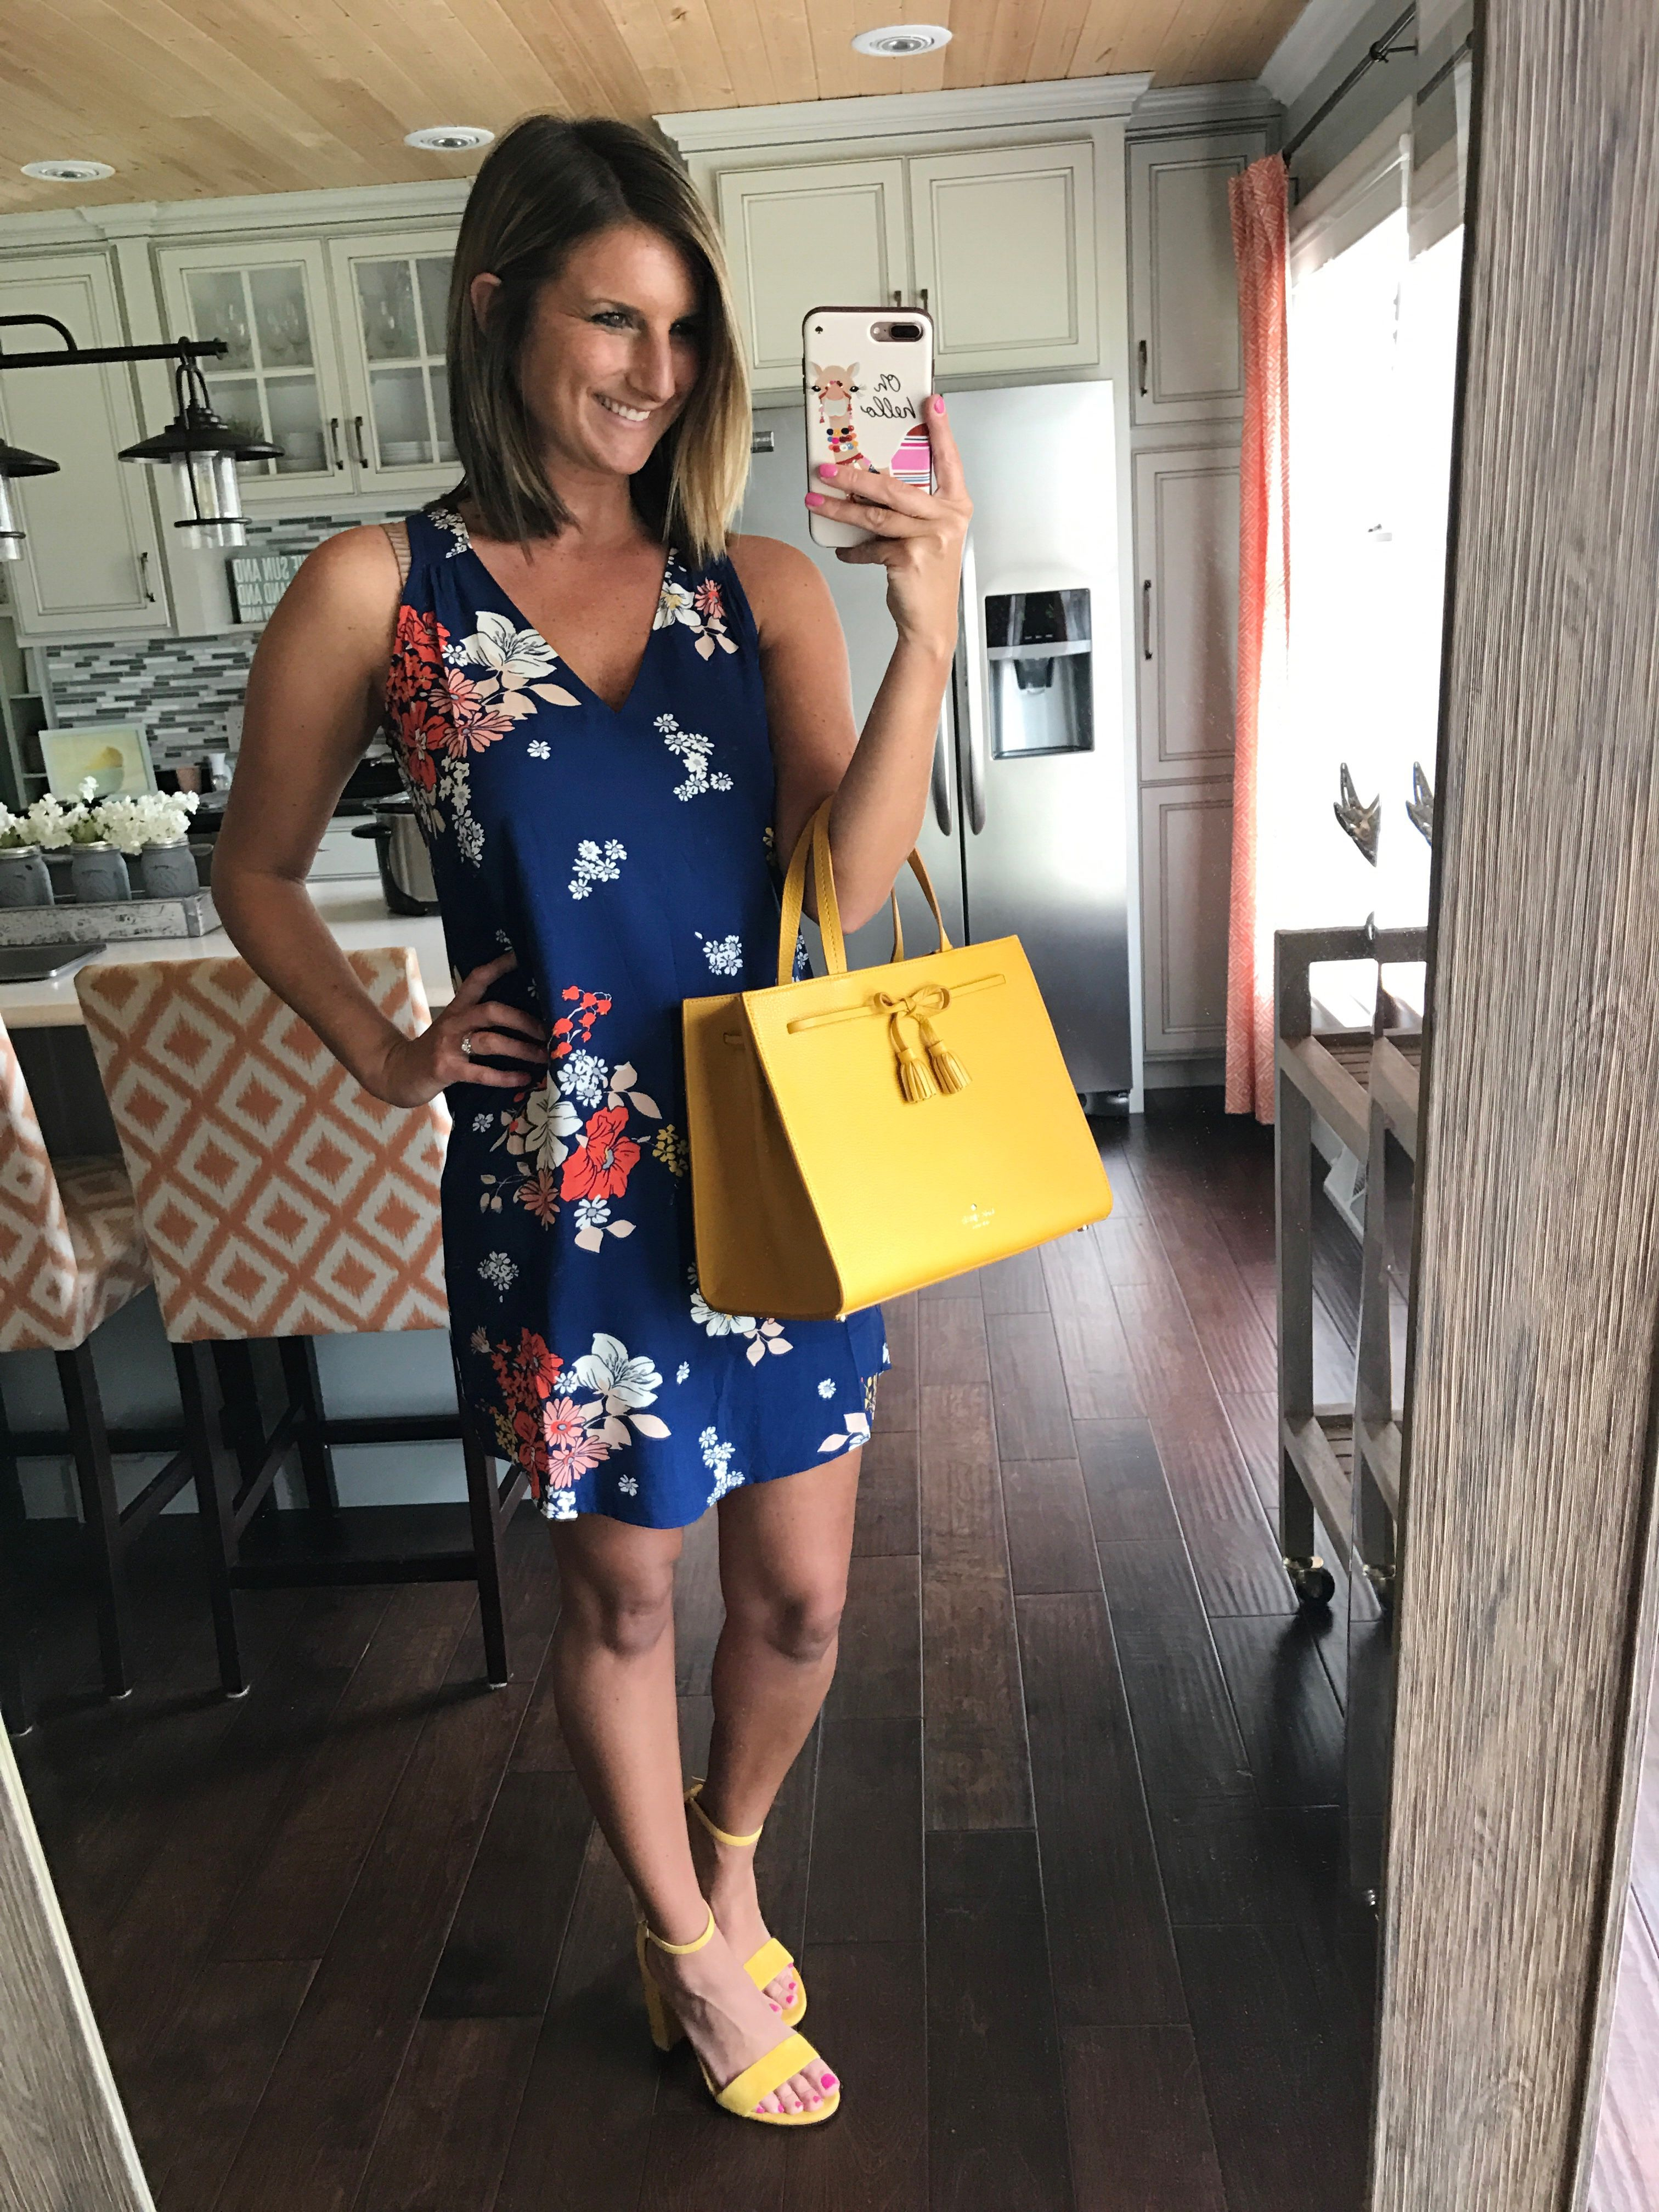 8a22afb67cc1 Old Navy floral shift dress for under  20 with yellow accessories for  spring and summer! Click on photo for direct links to shop!